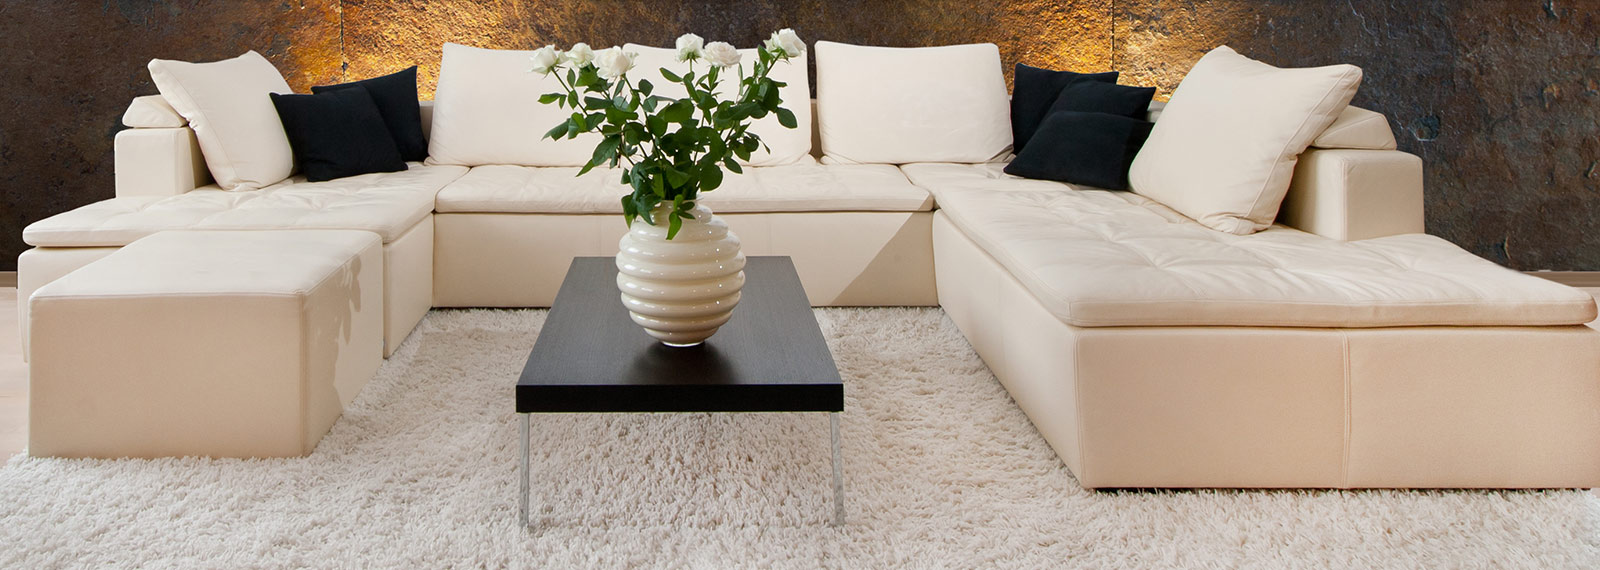 Authentic Flokati Rugs your source